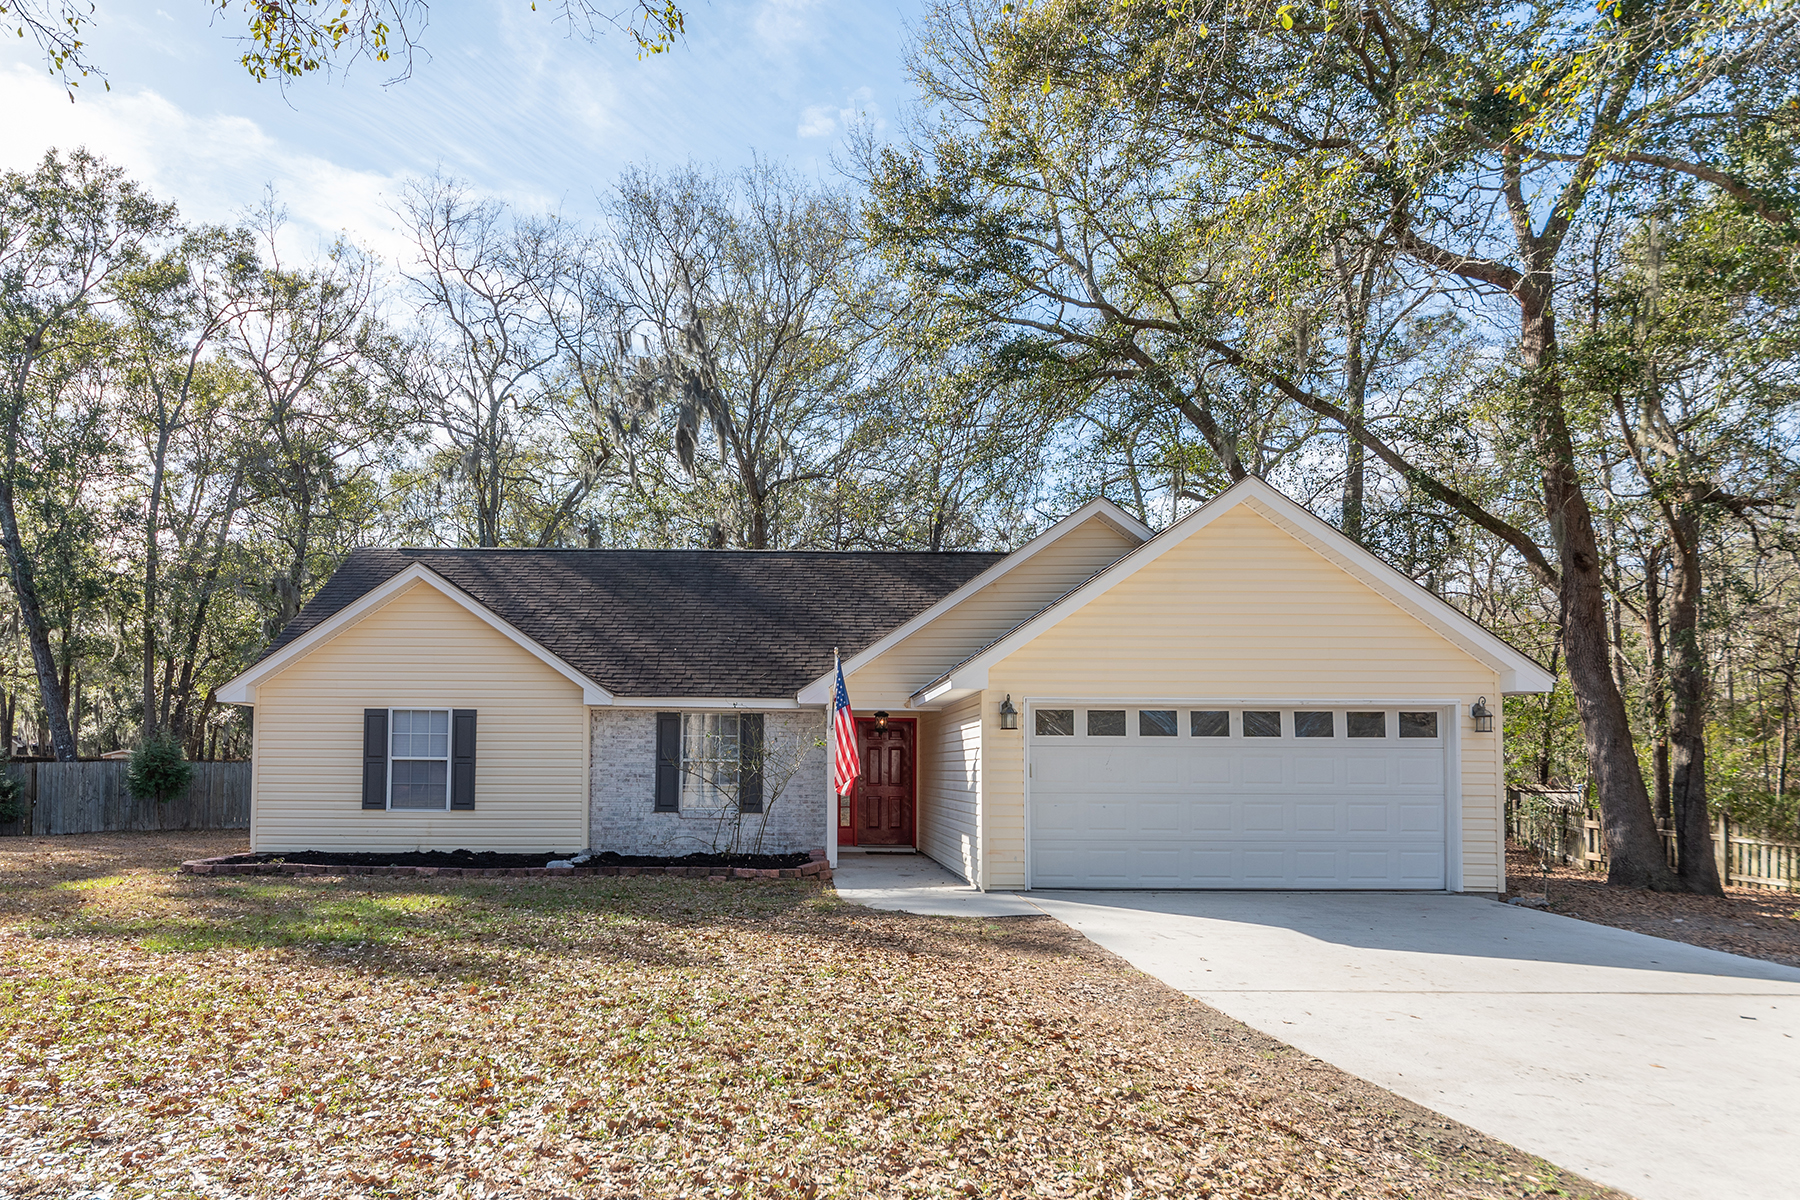 Single Family Homes for Active at 8 Purdy Way Beaufort, South Carolina 29907 United States